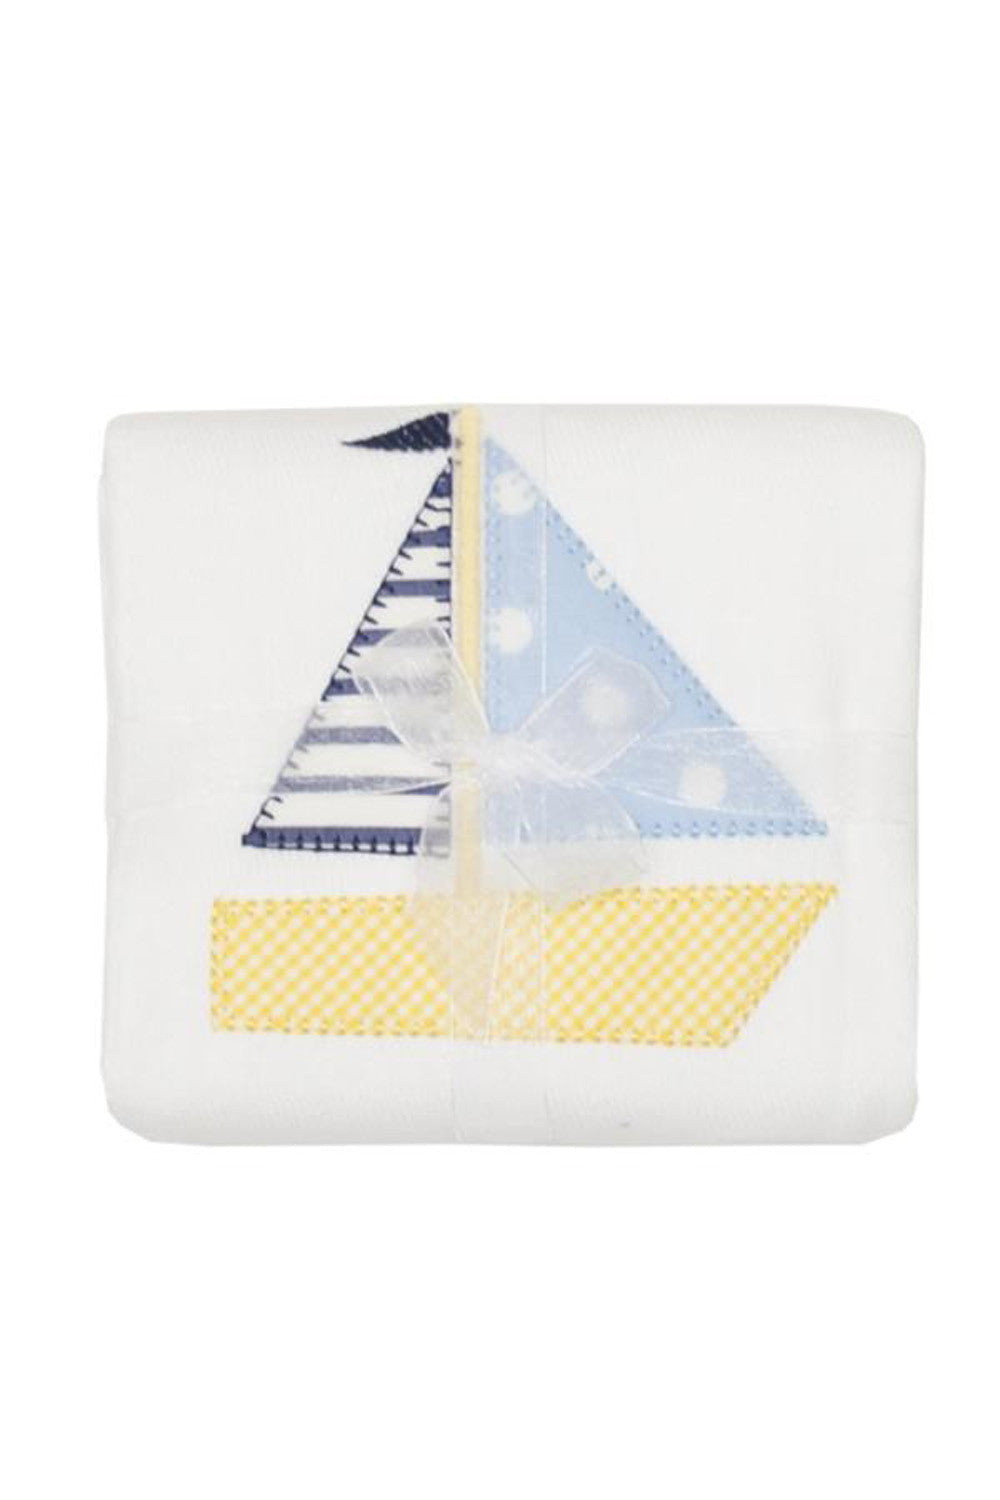 Applique Burp Pad - Sailboat